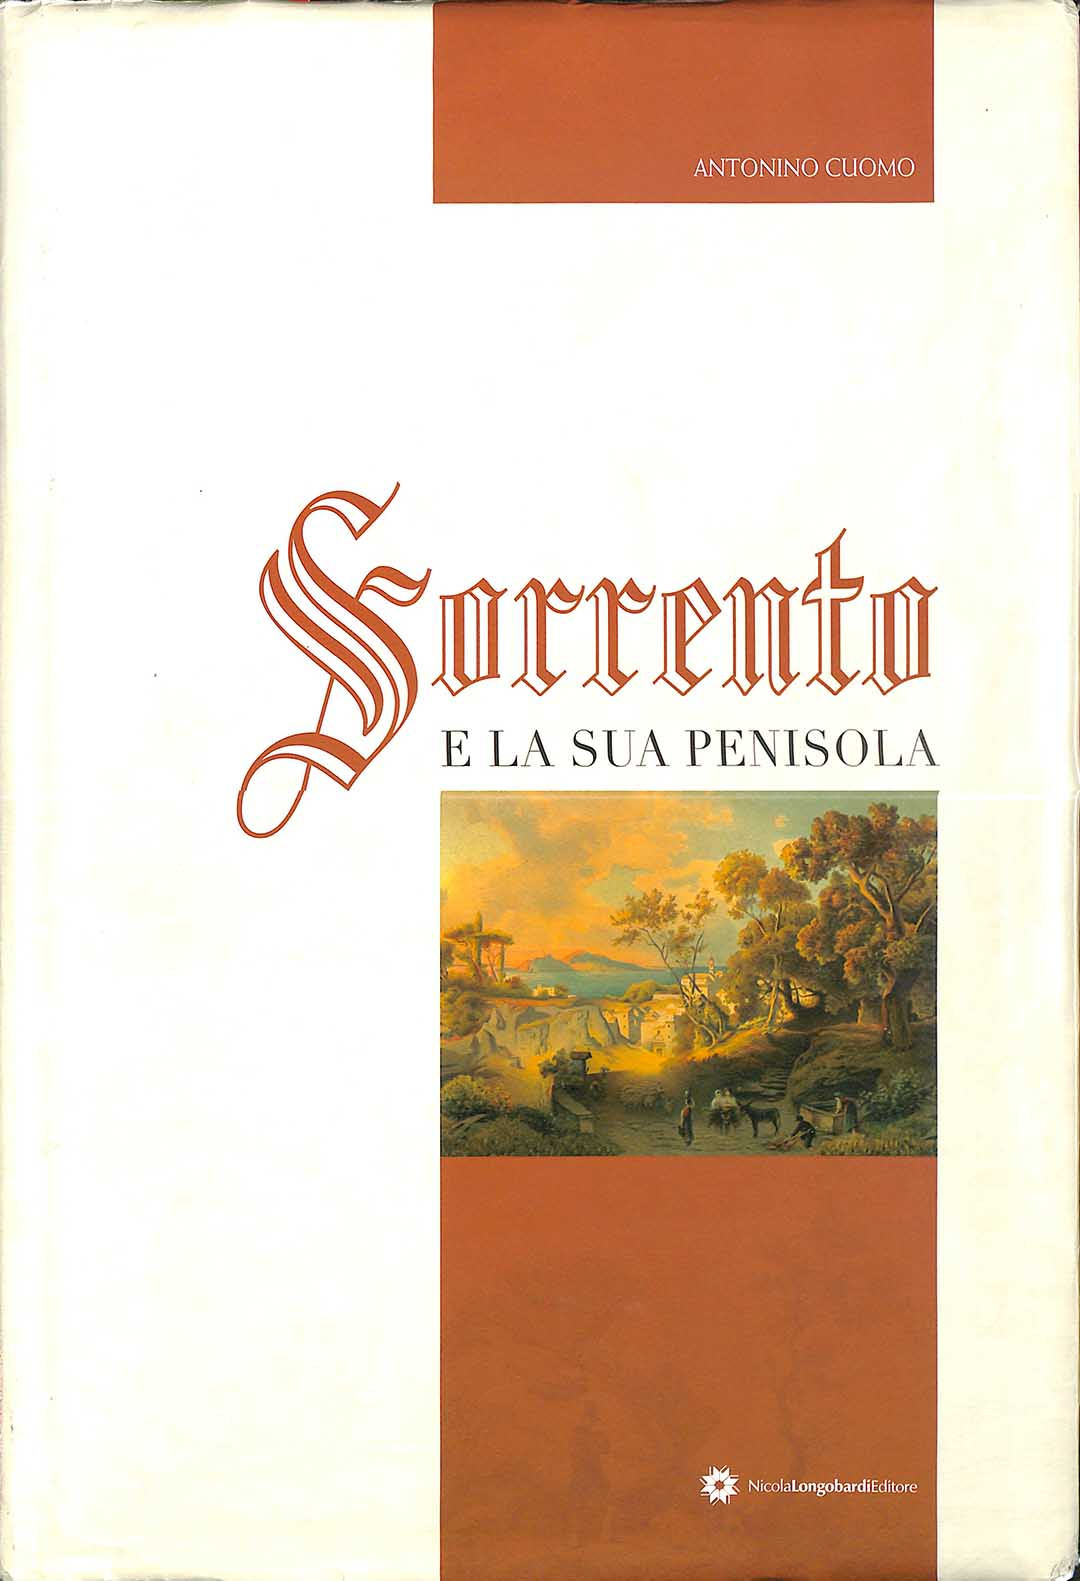 Antonino Cuomo, Sorrento and its peninsula. The engravings from Vico Equense to Massa Lubrense from the 16th to the 19th century